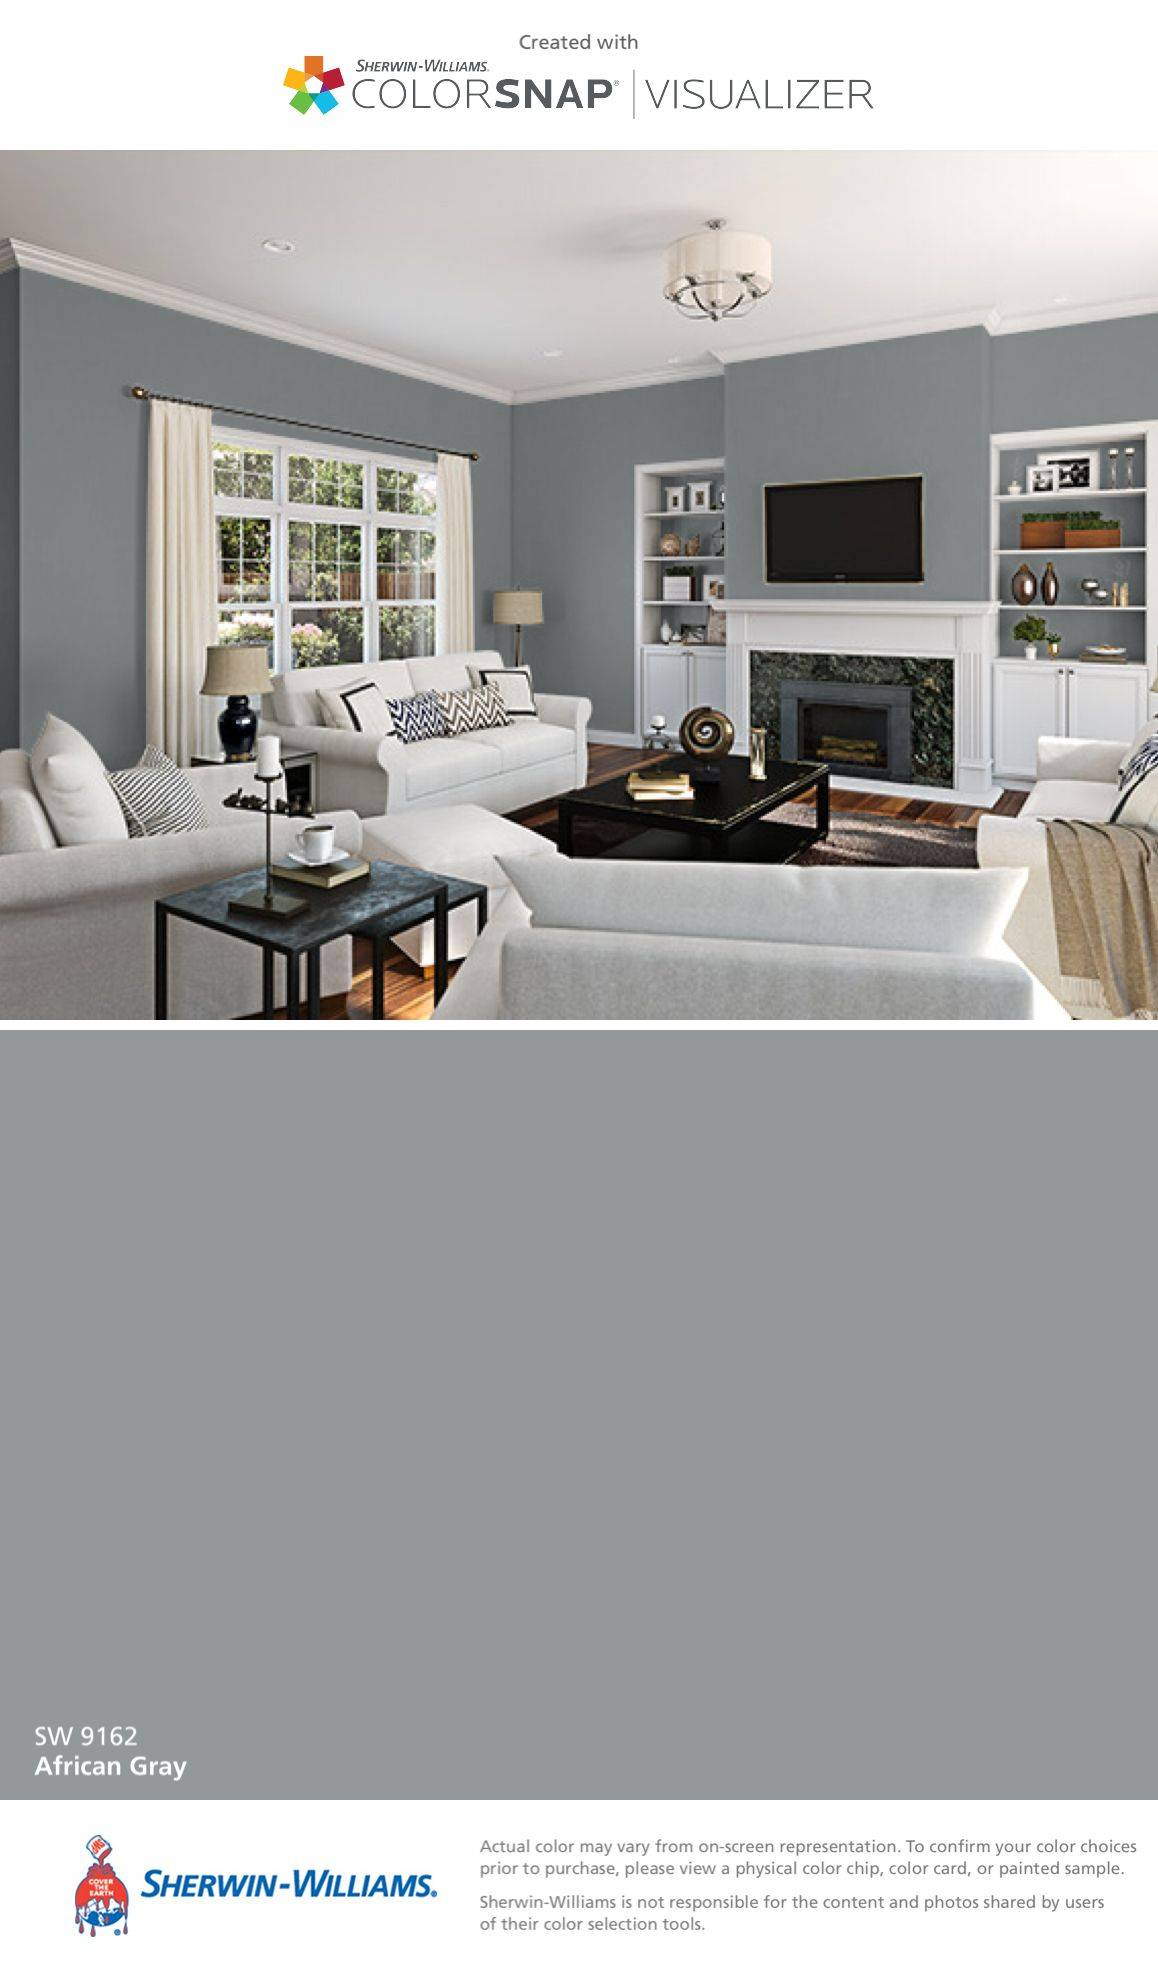 Highland Grey Sherwin Williams Luxury Paint Color Matching App Colorsnap Paint Color App